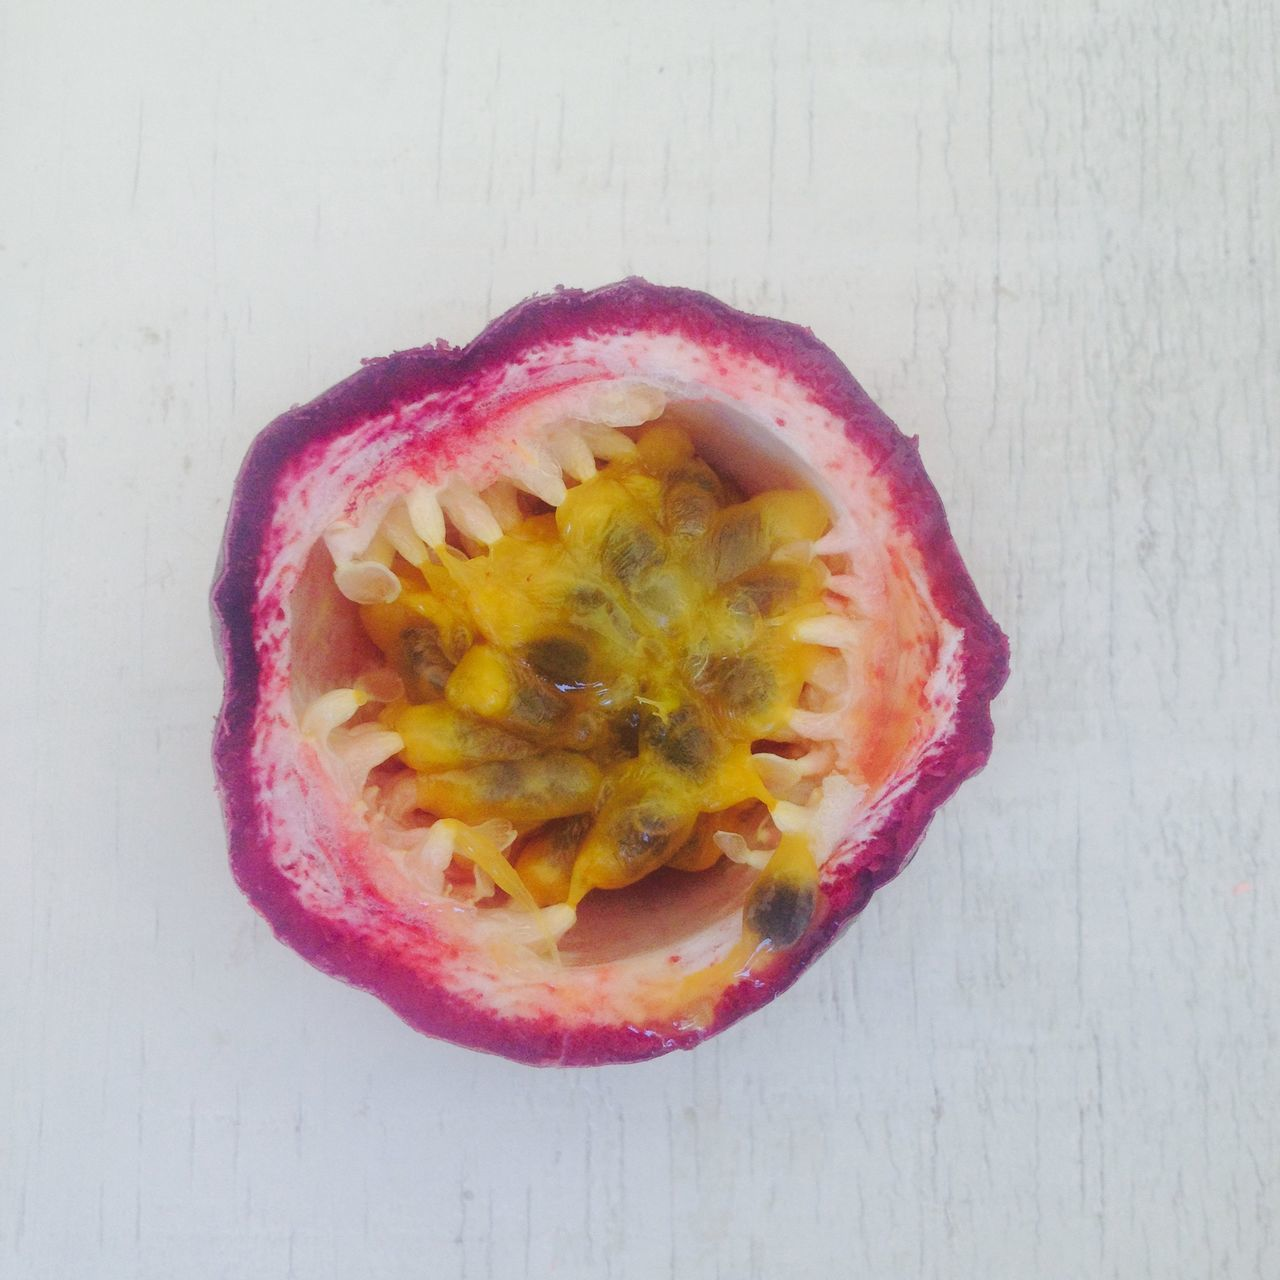 Passionsfrucht Passion Fruit Beautiful